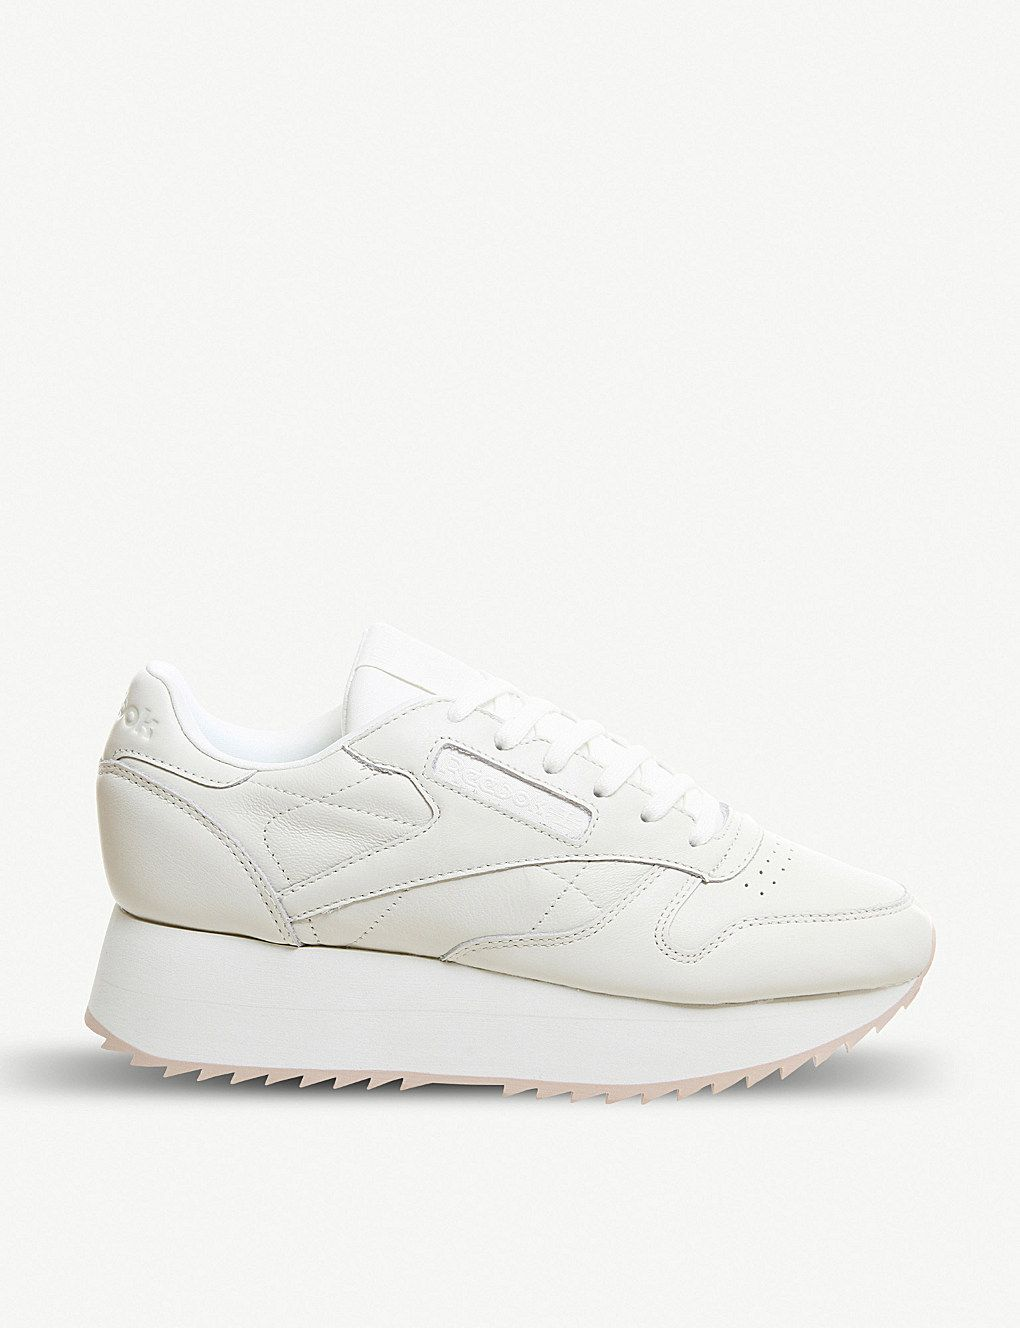 d5ed1a2d2 REEBOK Classic Bold leather platform trainers in 2019